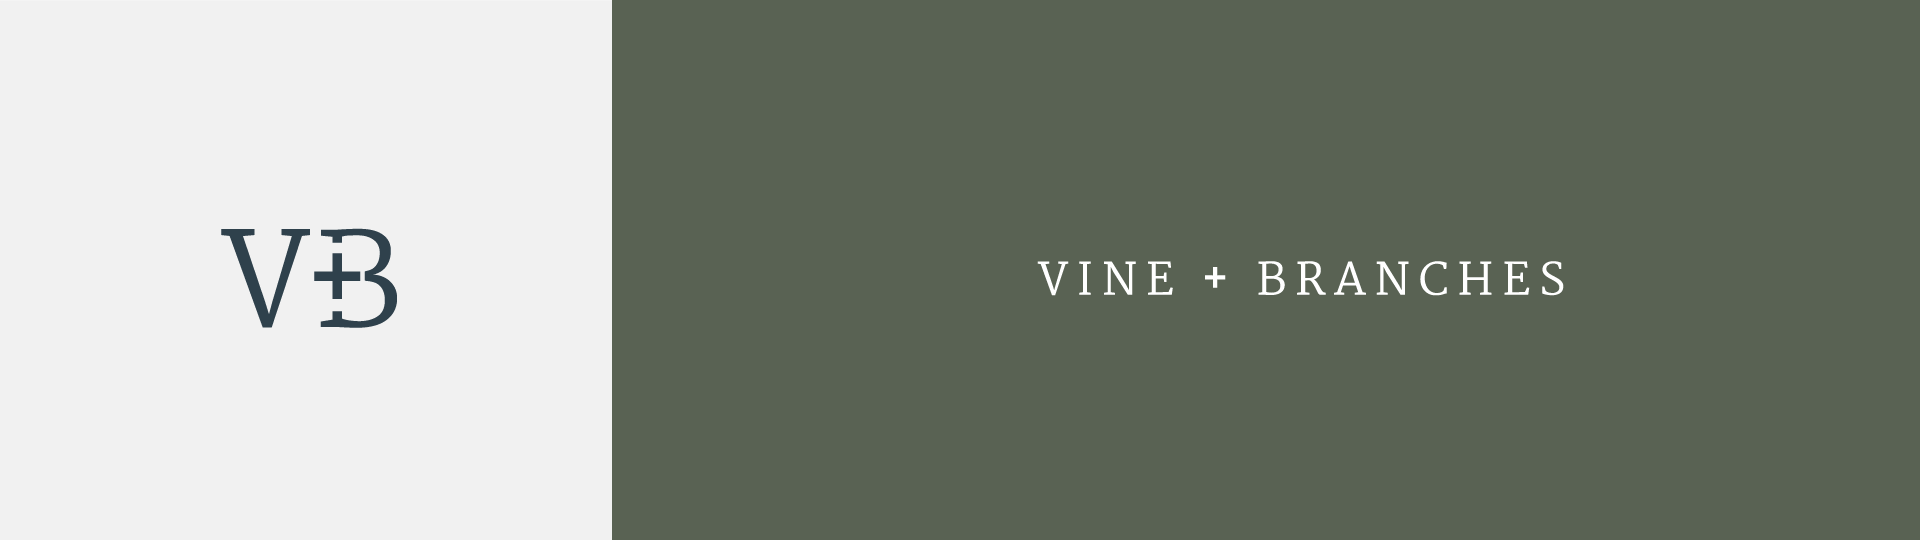 vineandbranches-04.png